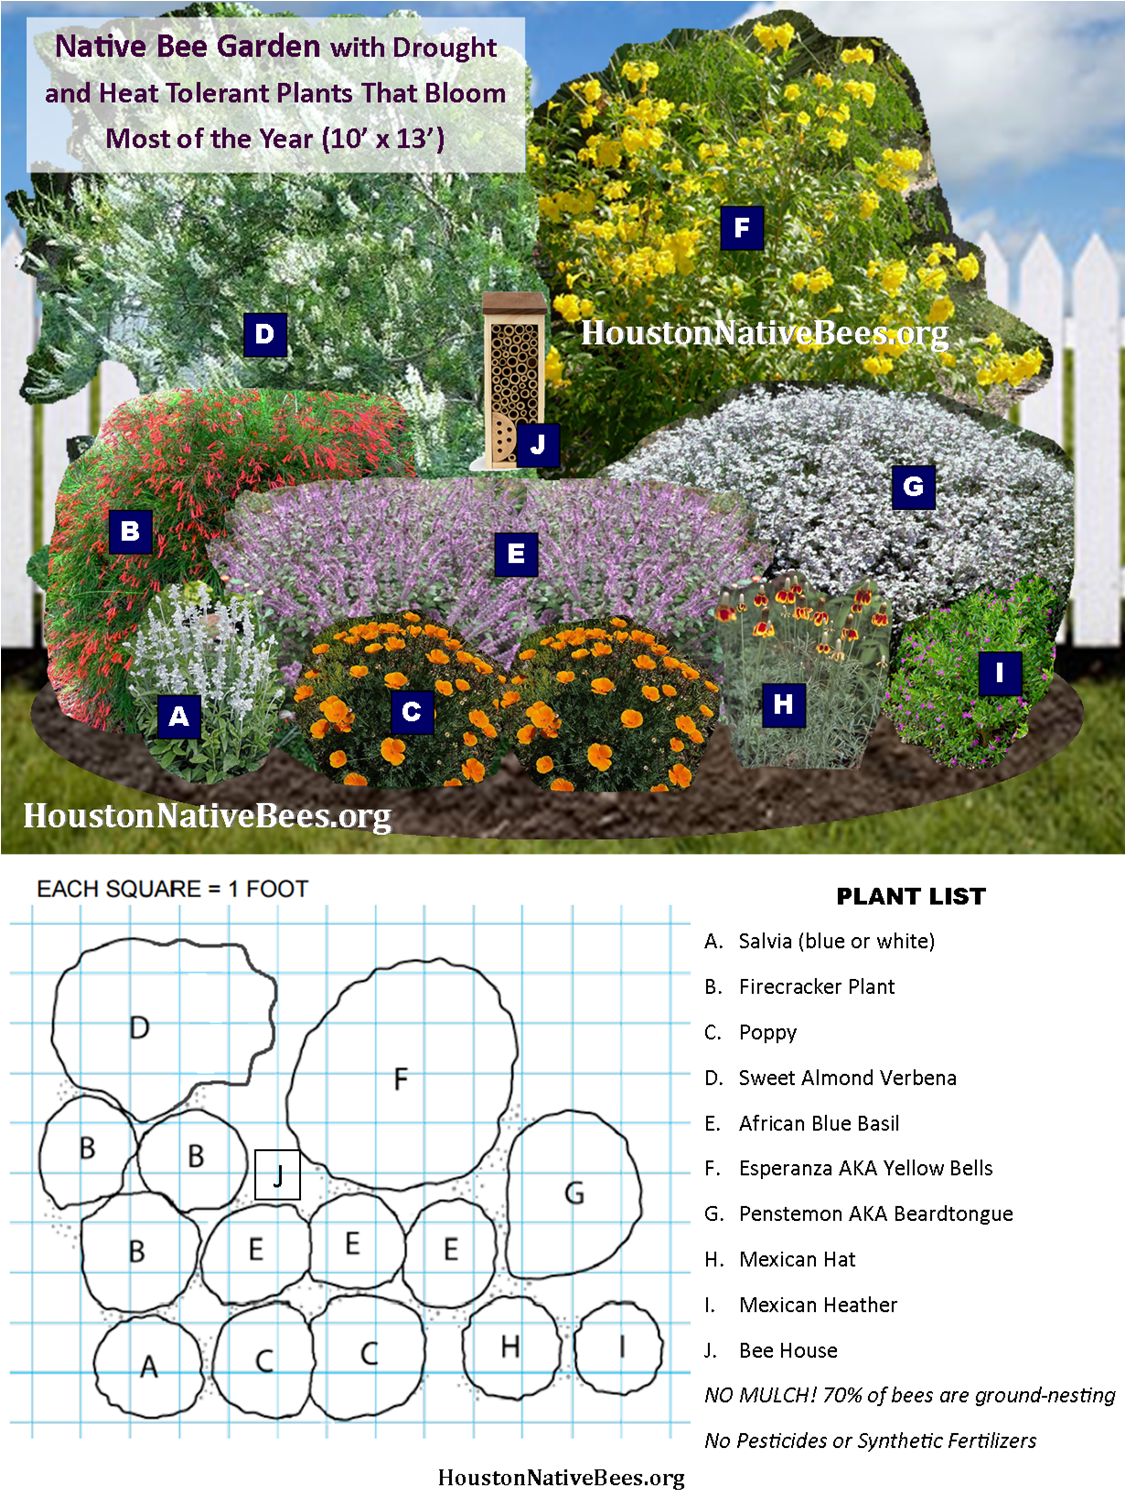 Exceptionnel Easy Garden Design To Help Native Pollinators